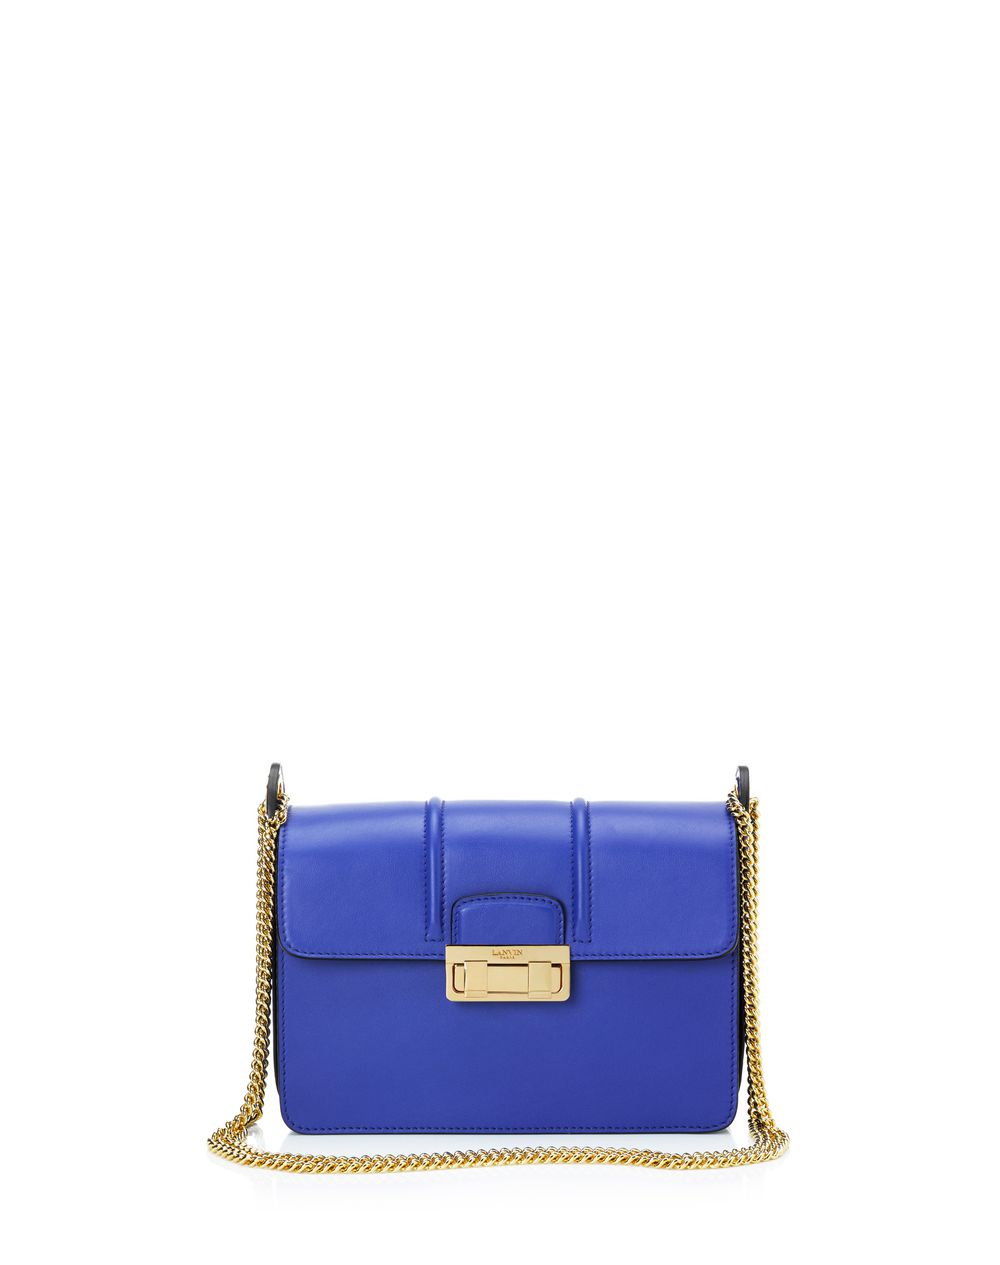 Small Jiji by Lanvin bag in smooth calfskin - Lanvin